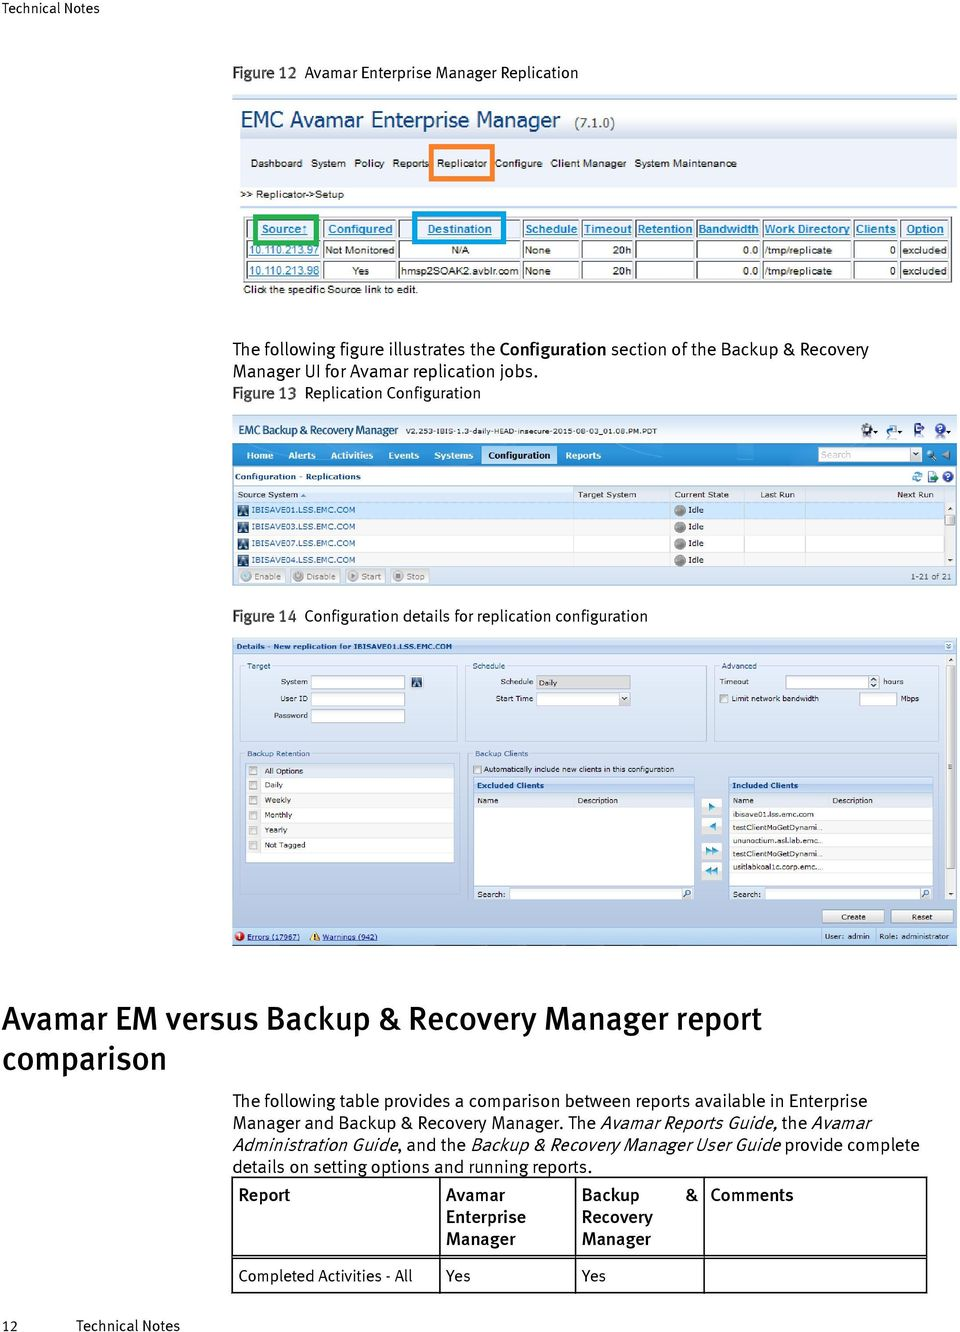 provides a comparison between reports available in Enterprise Manager and Backup & Recovery Manager.